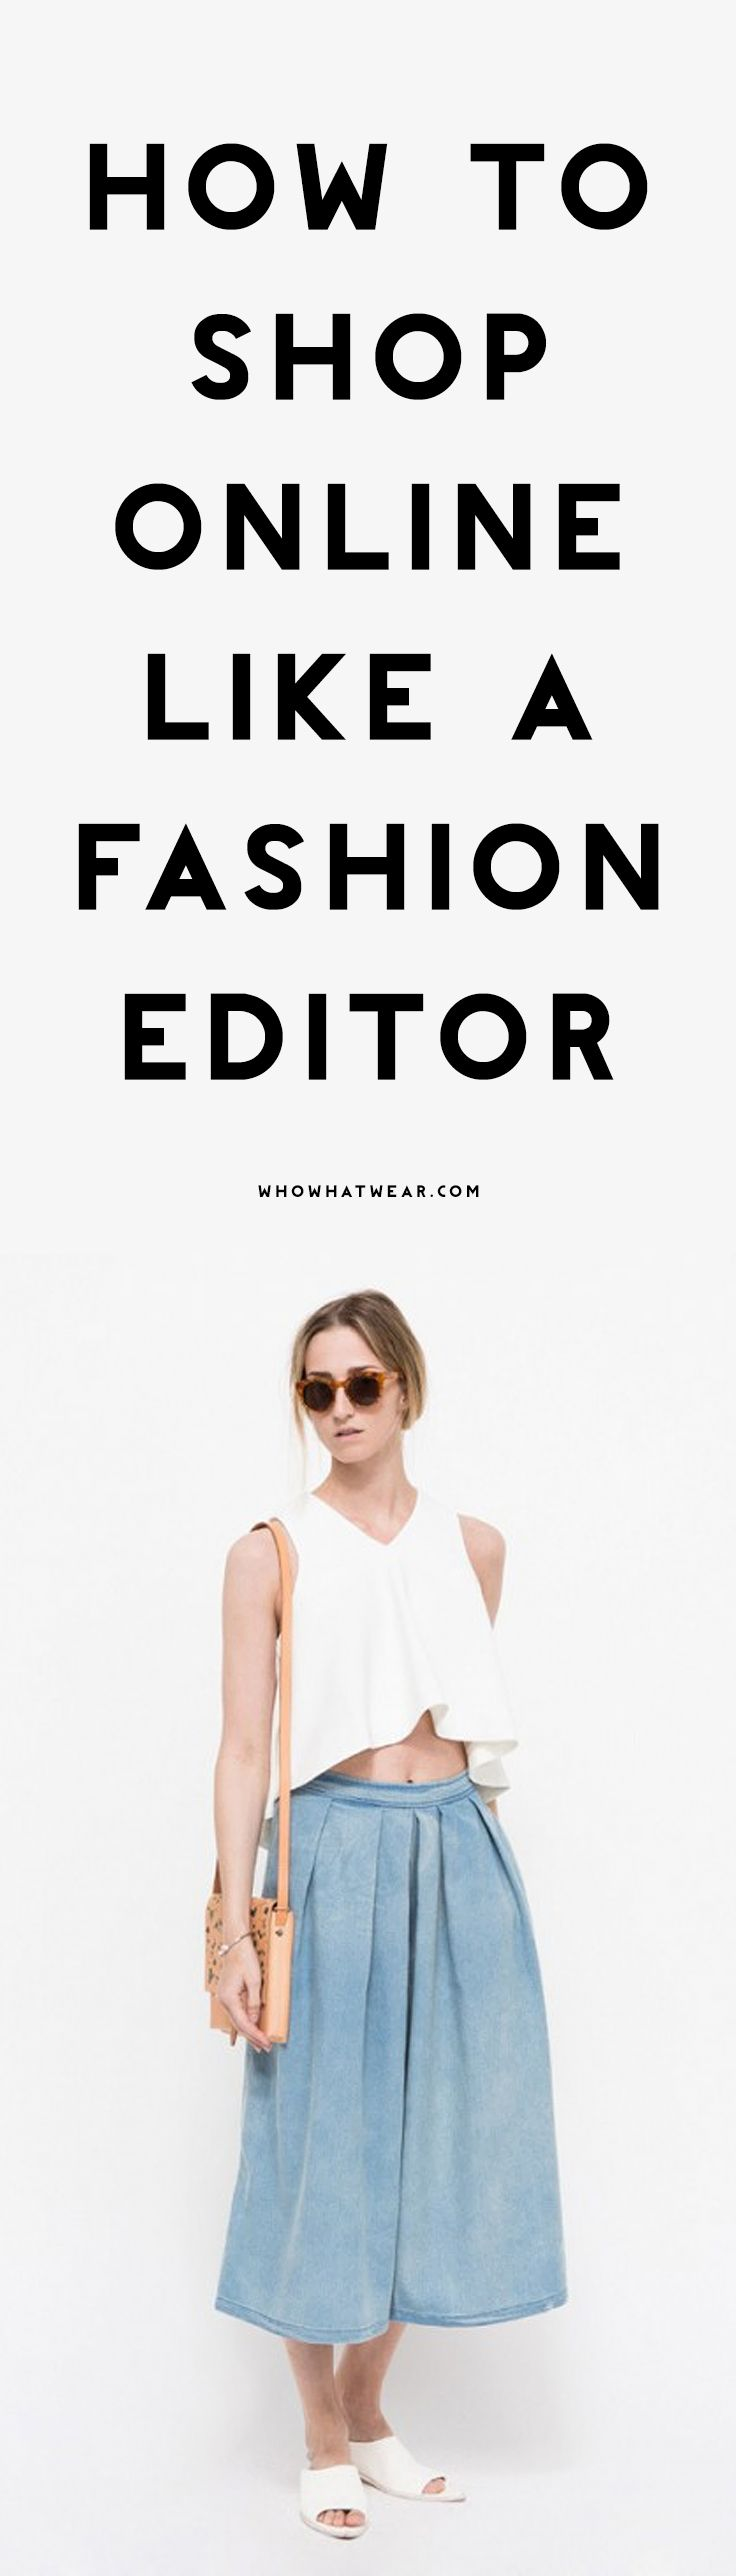 Best 25+ Fashion editor ideas on Pinterest | Business diary ...